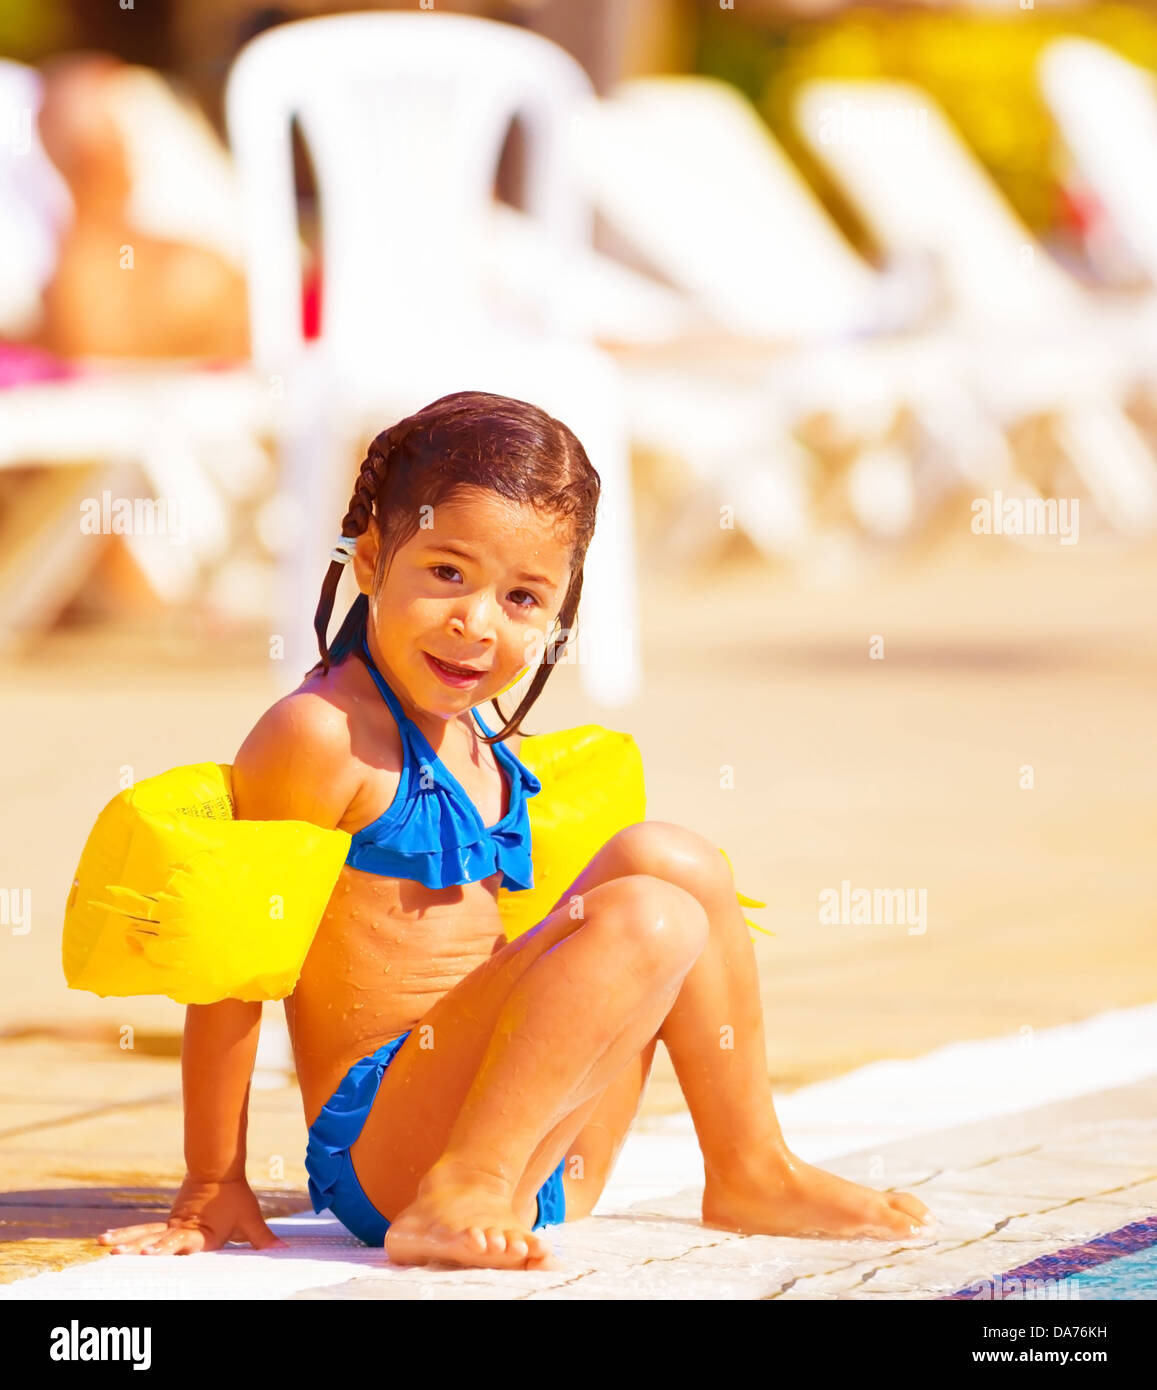 Cute little girl sitting near pool, active happy childhood, summer holidays, having fun outdoors, wearing swimwear Stock Photo